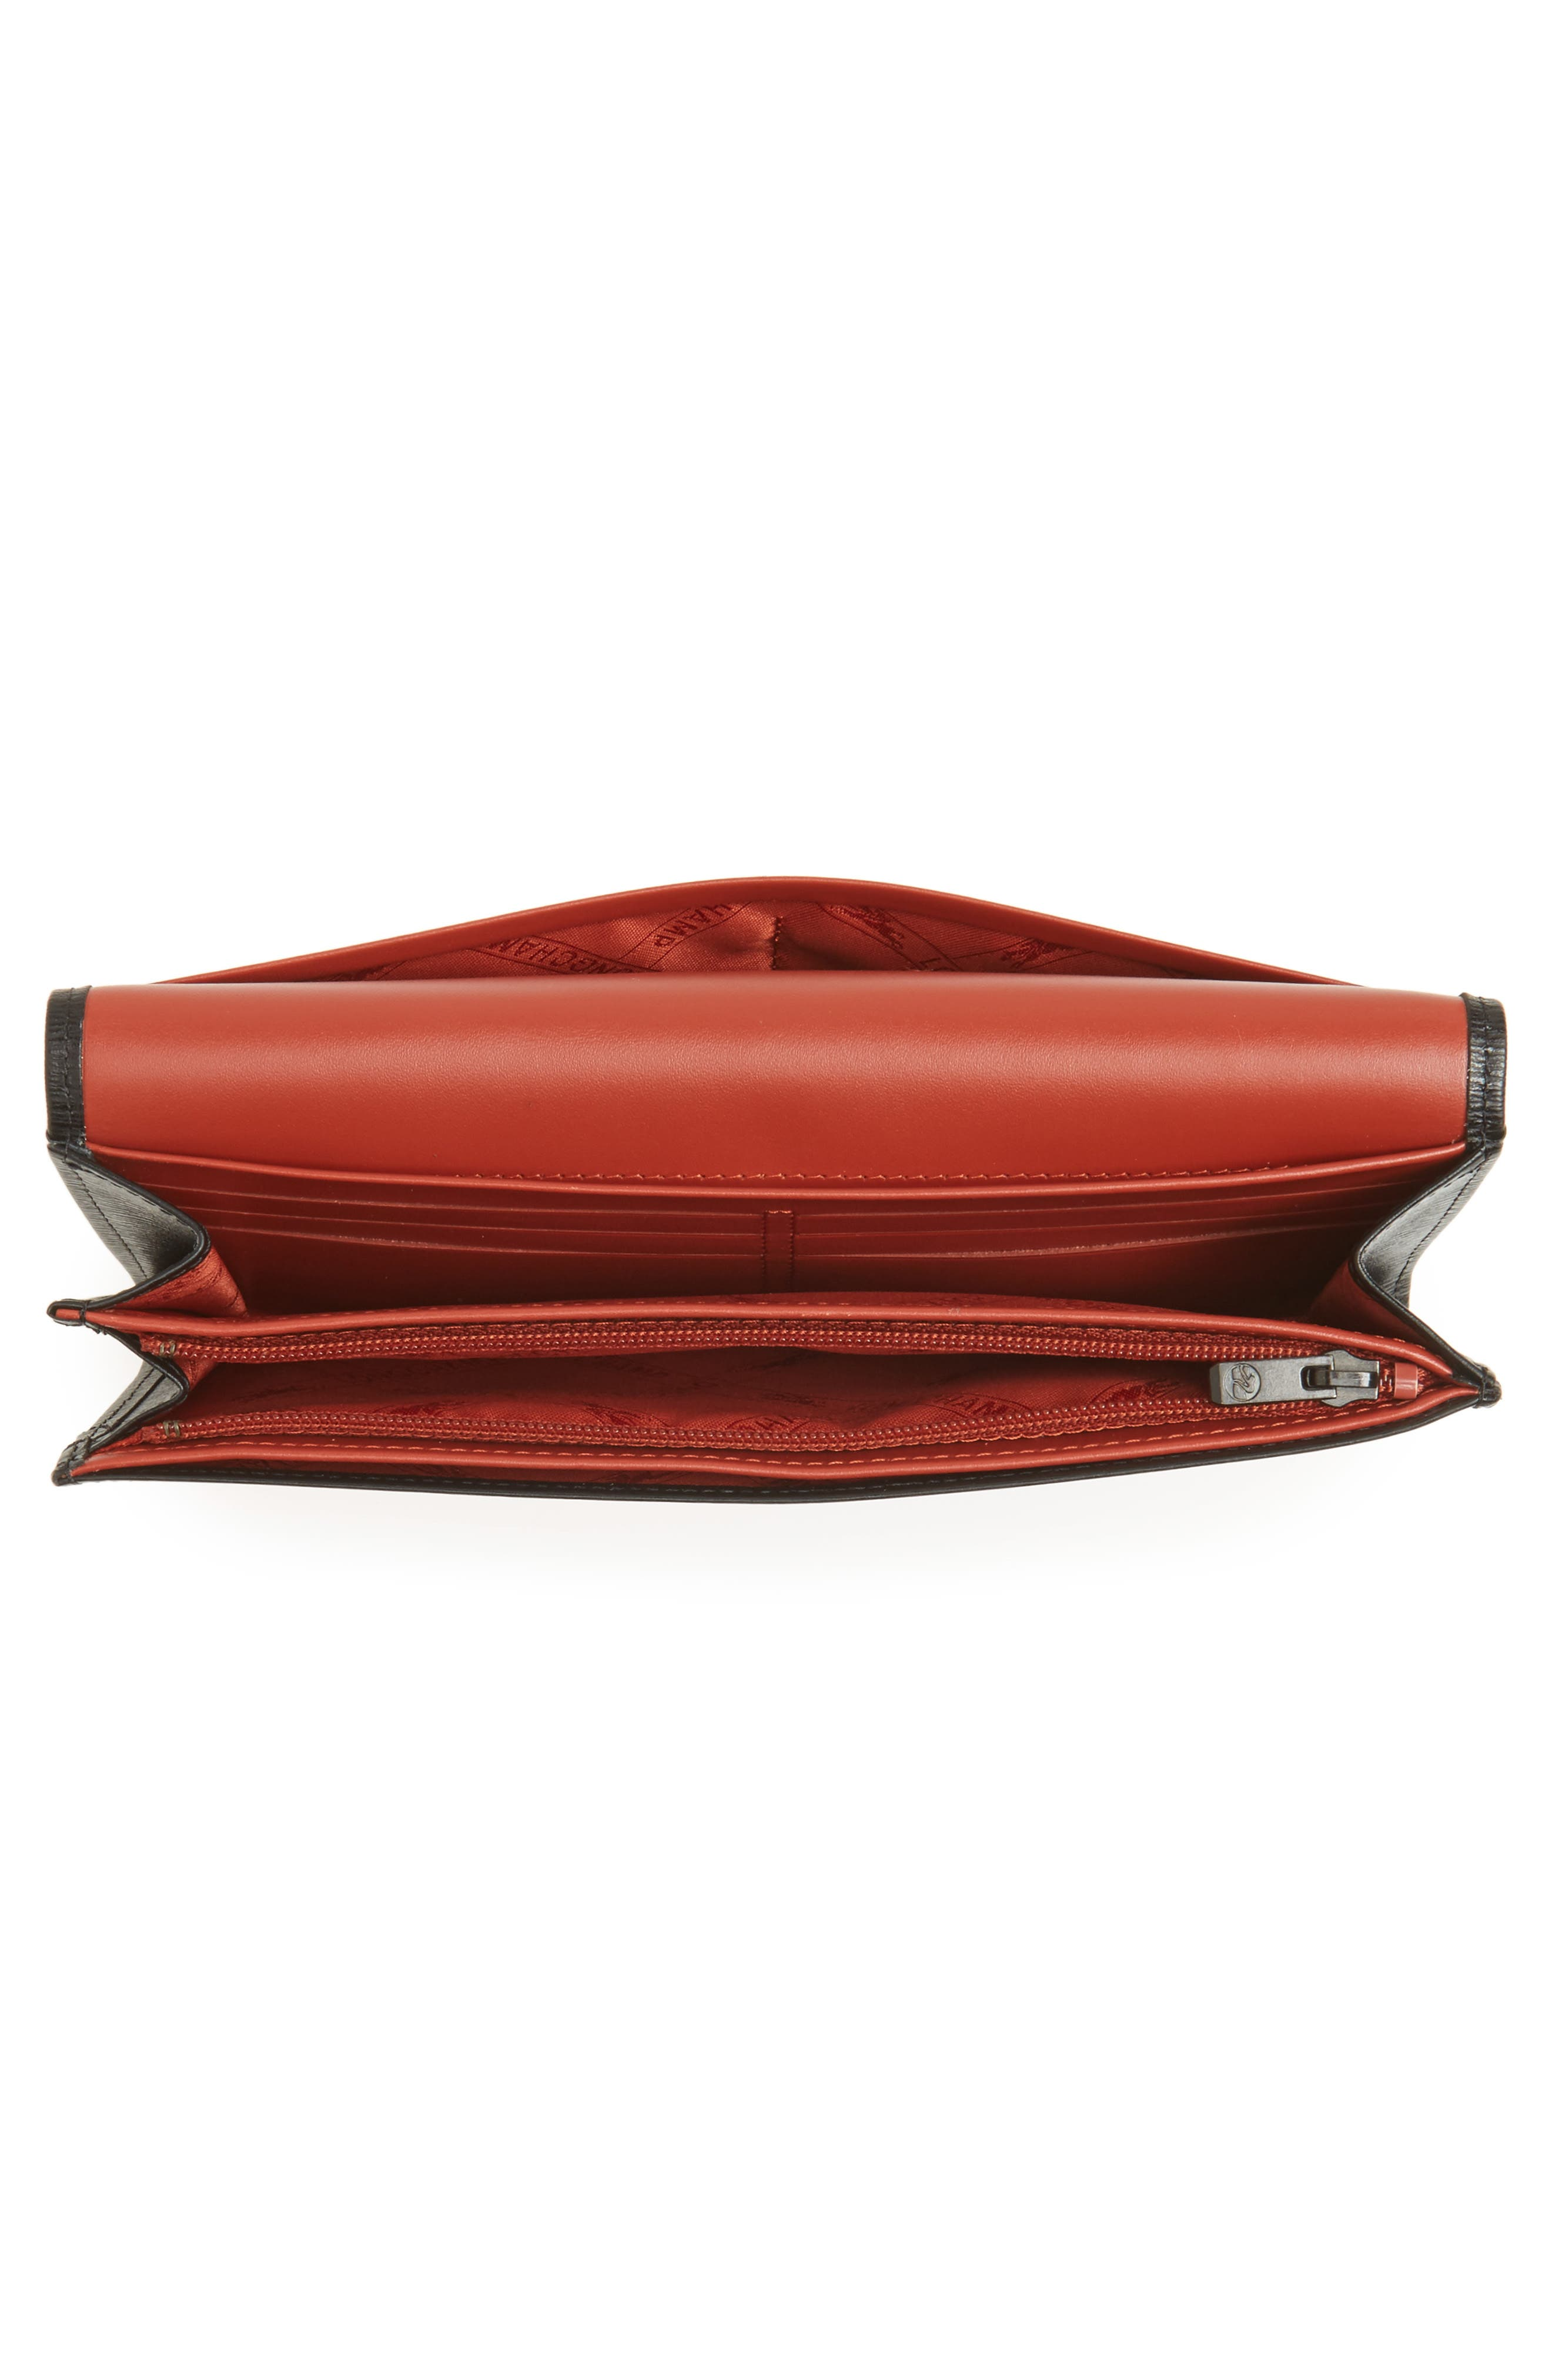 Roseau Leather Continental Wallet,                             Alternate thumbnail 4, color,                             002